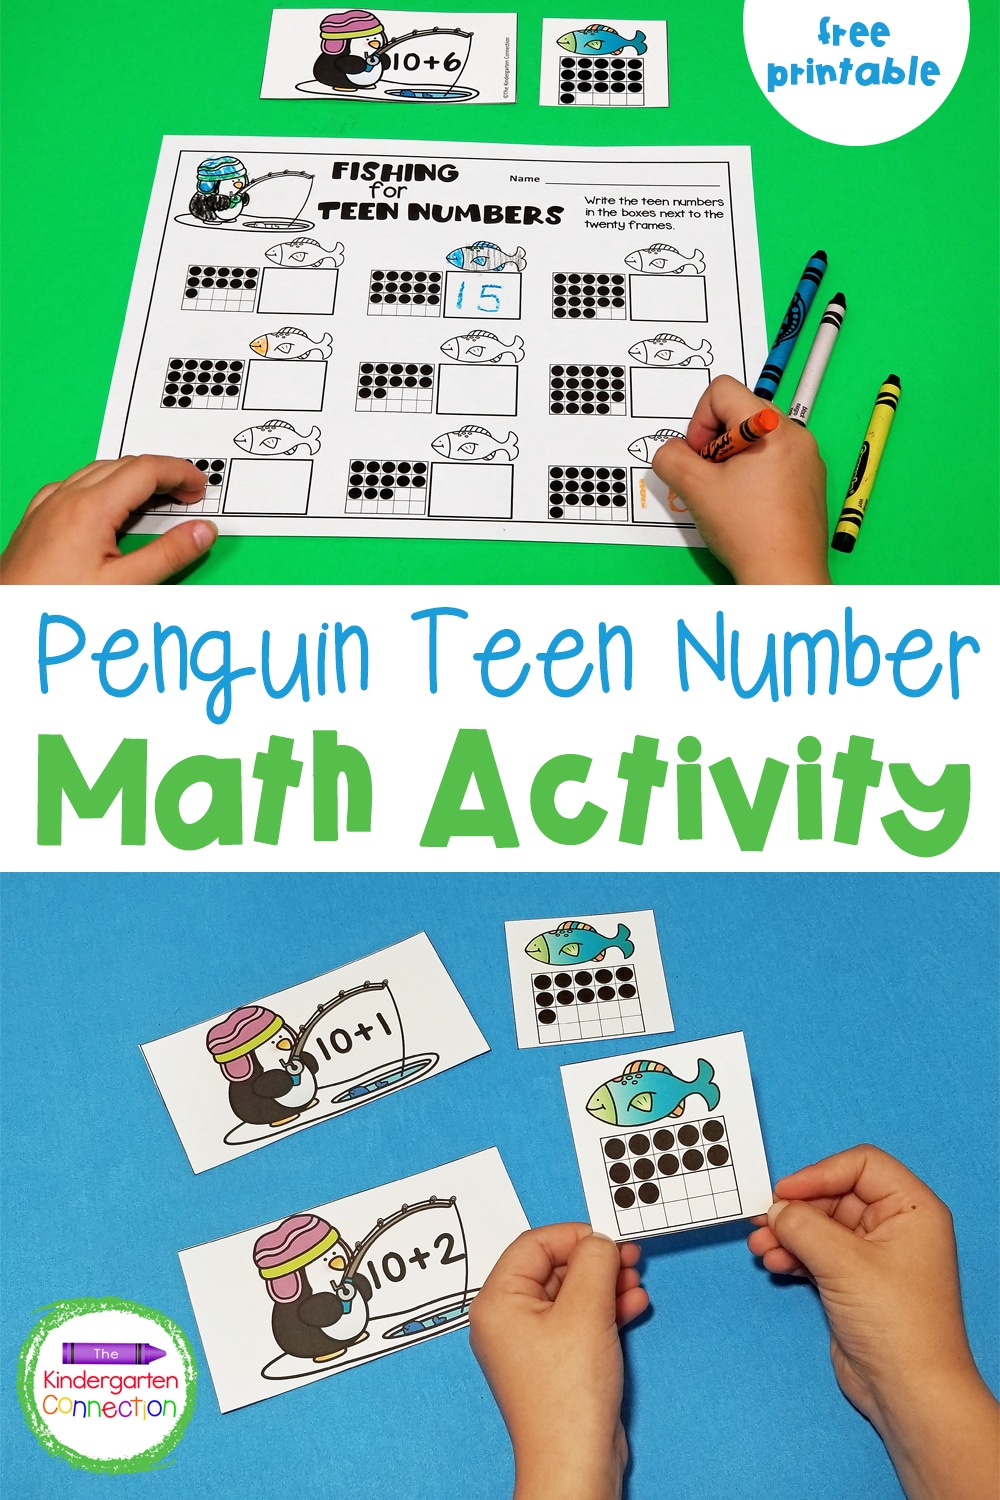 """This free Penguin Teen Number Counting Game shows that a teen number is made up of """"10 and some more"""" in a fun, hands-on way!"""